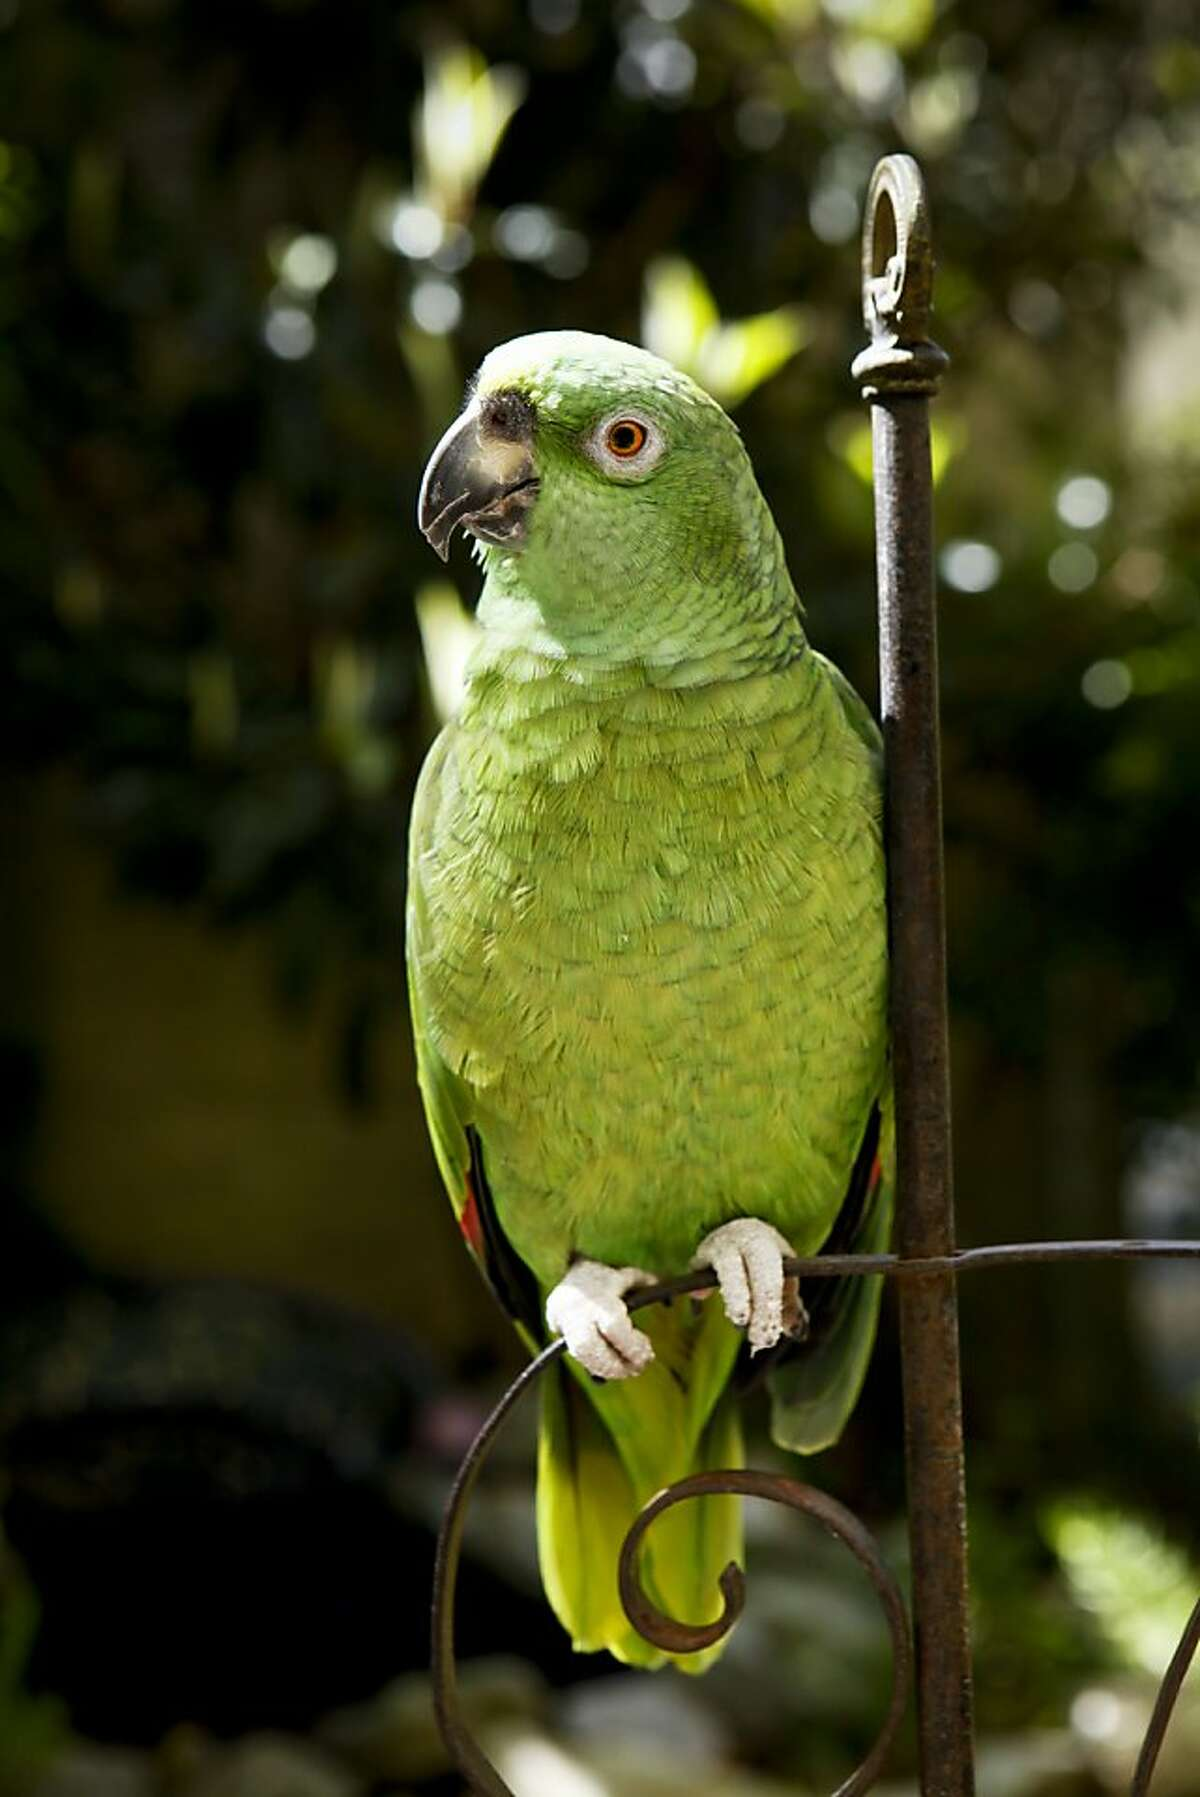 Simon, a 23-year old Yellow Nape Amazon Parrot sits in a garden created by its owners, James Pettigrew and Sean Stout of Organic Mechanics, on Friday, May 6, 2011 in San Francisco, Calif.